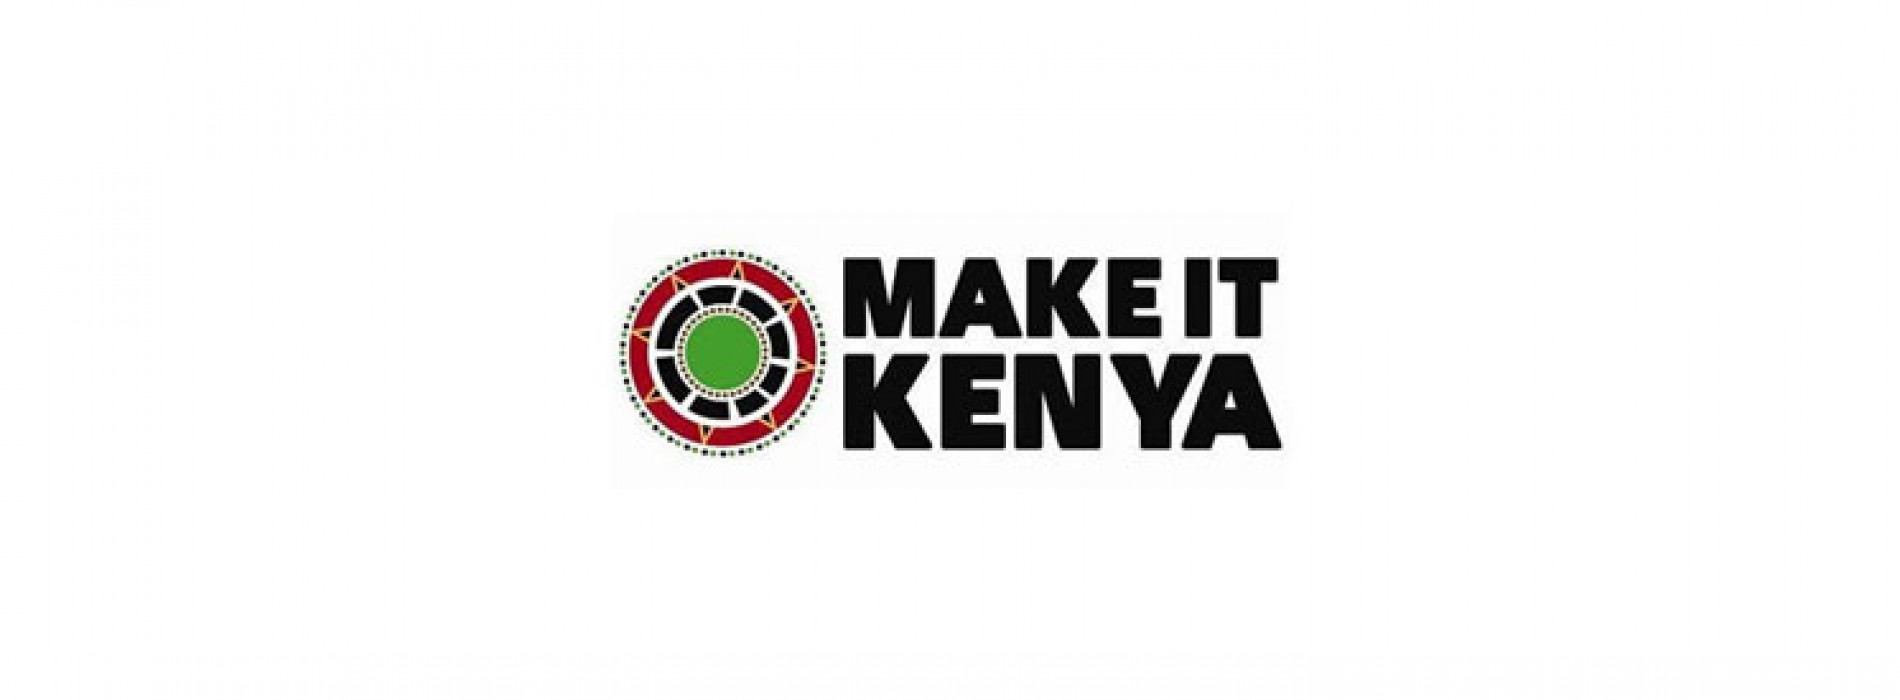 President of Kenya launches new international brand campaign to support tourism drive